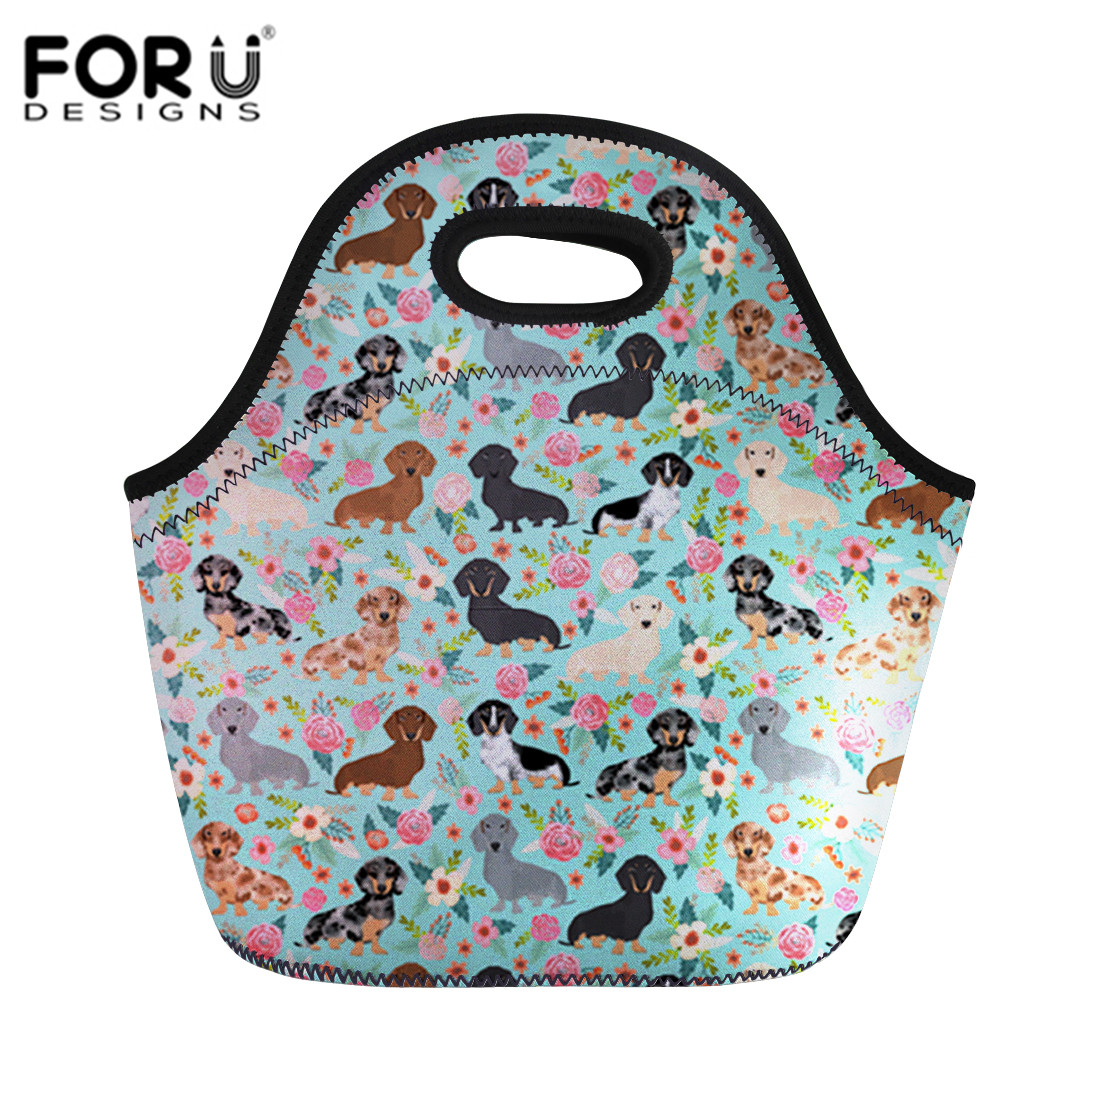 FORUDESIGNS Women Lunch Bags Handbags Kid Portable Neoprene Thermal Food Bag Animal Florals Pattern Lunch Box Bag Tote Pouch Sac